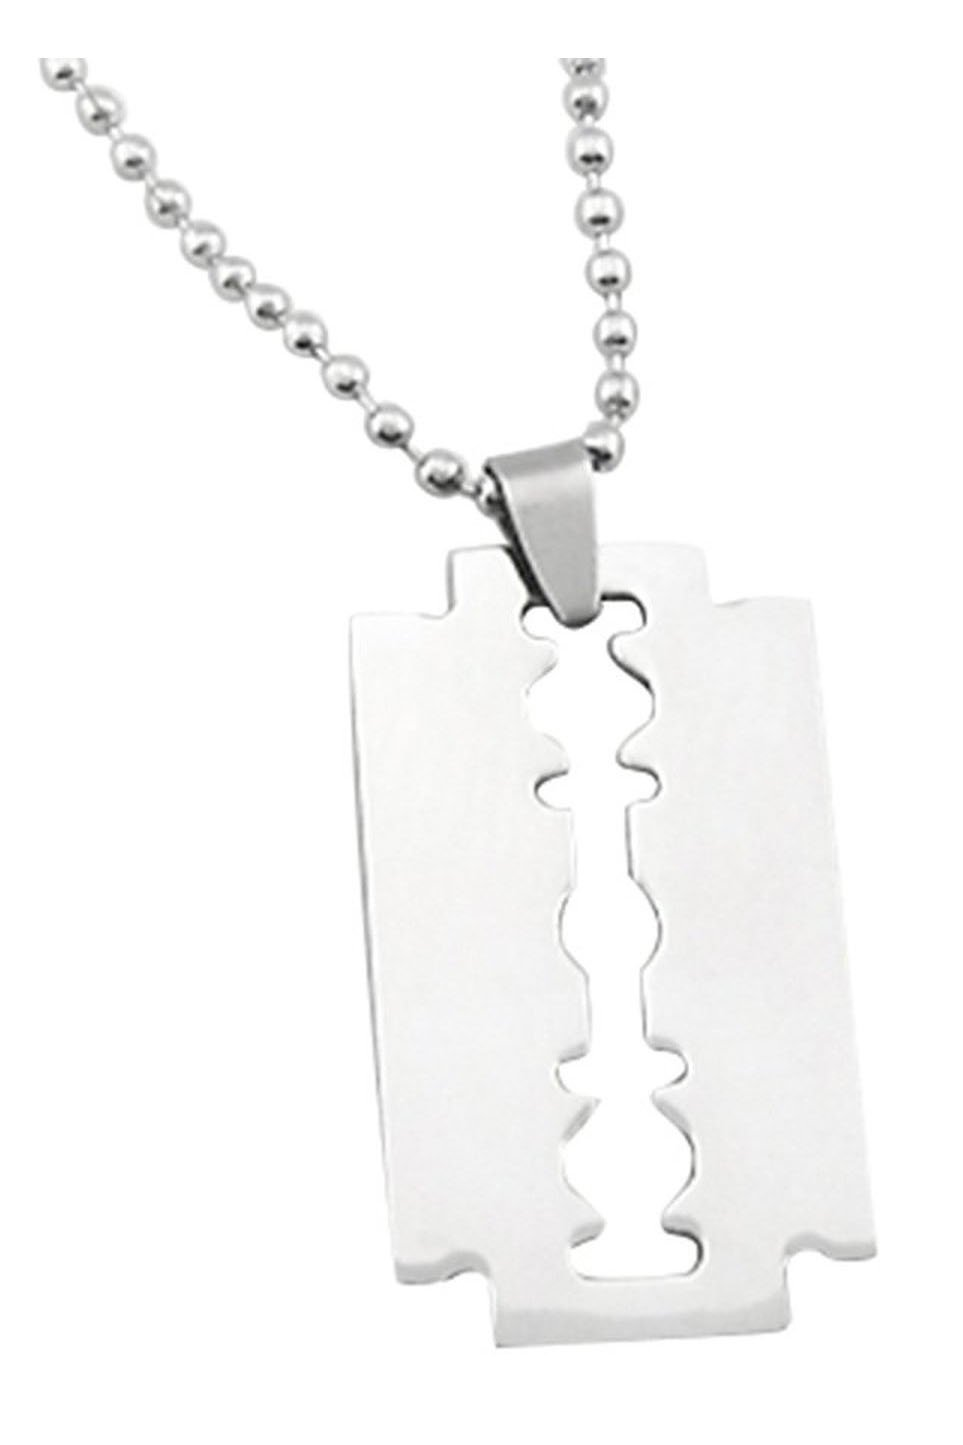 Cheap 9 saw chain blade find 9 saw chain blade deals on line at get quotations luquan mens stainless steel razor blade pendant chain necklace silver altavistaventures Images